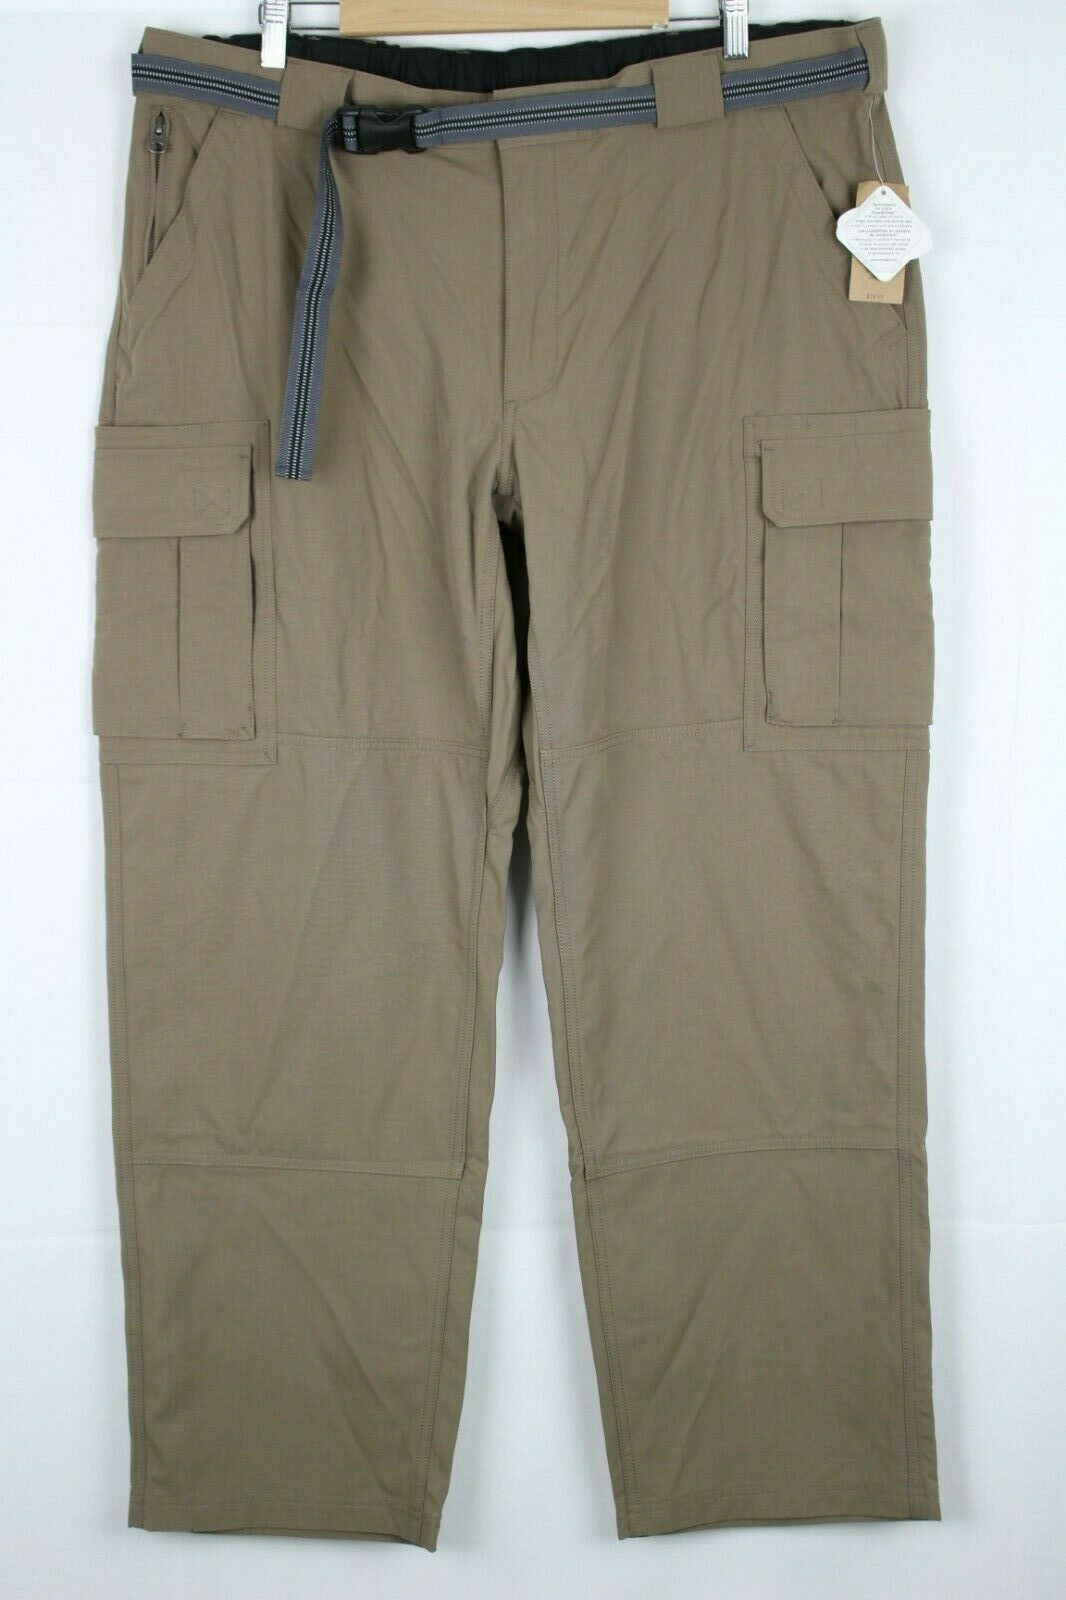 New Duluth Men's Dry On The Fly Cargo Pants Size 2XL x 32 Bark Brown